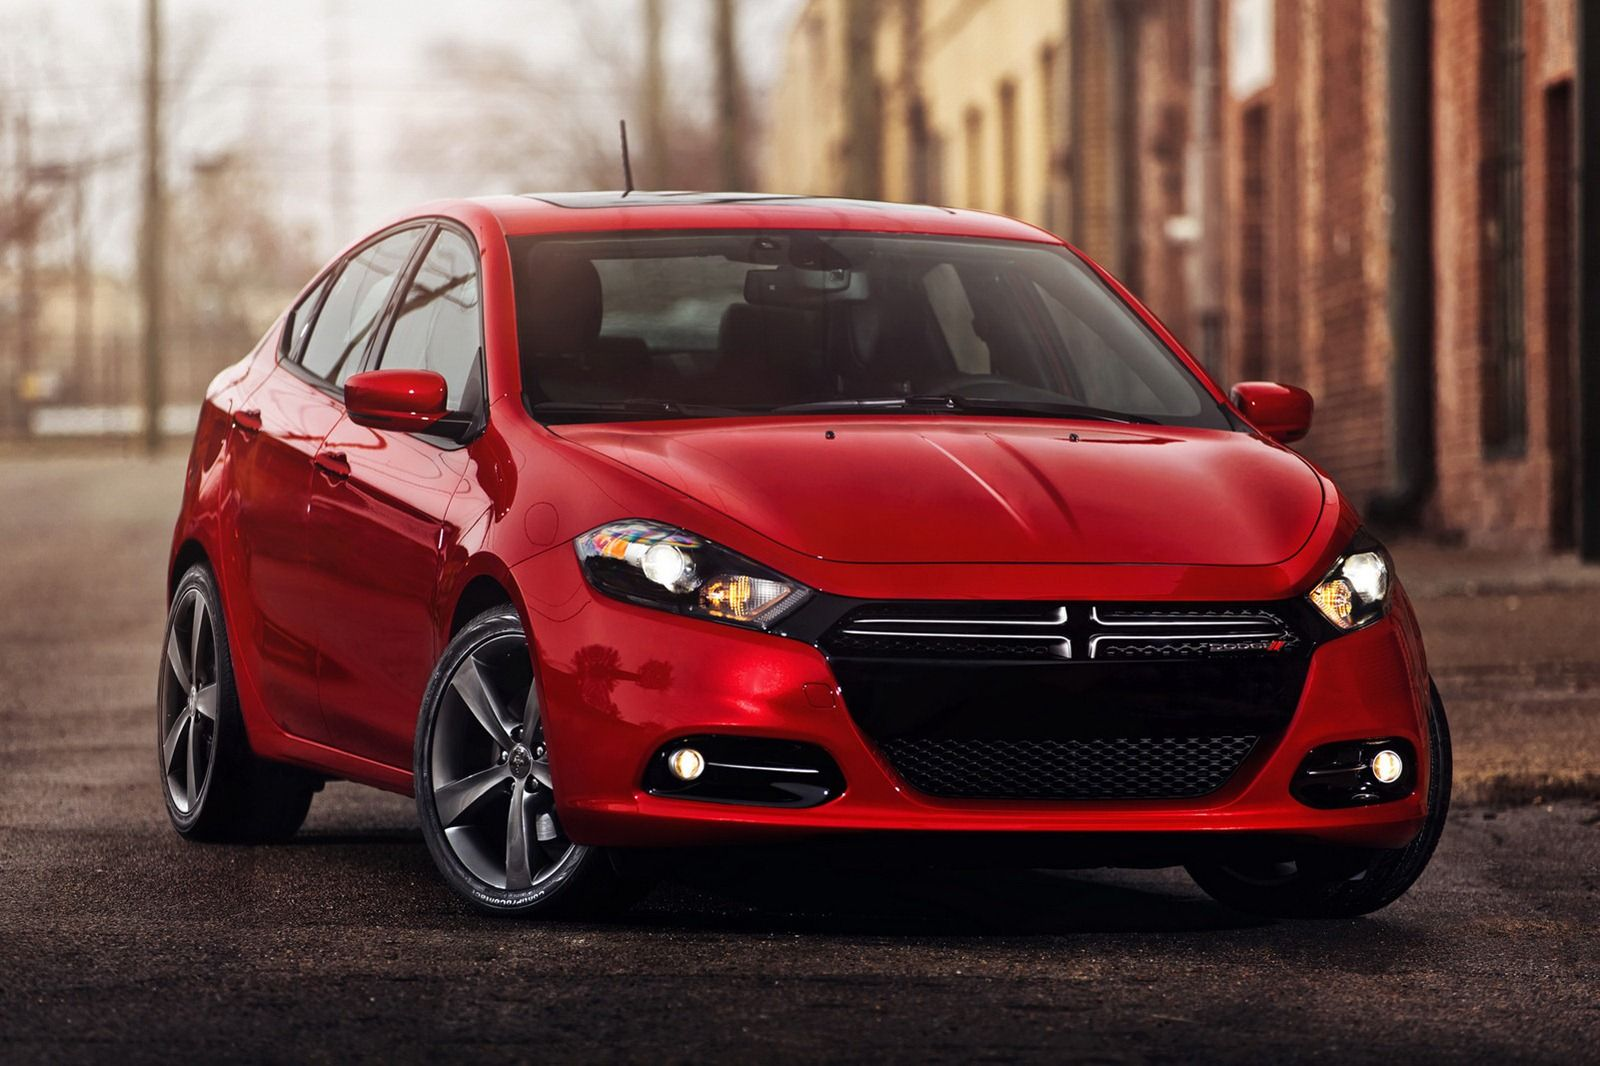 Dodge Announces Full Pricing Details For 2013 Dart Starts From